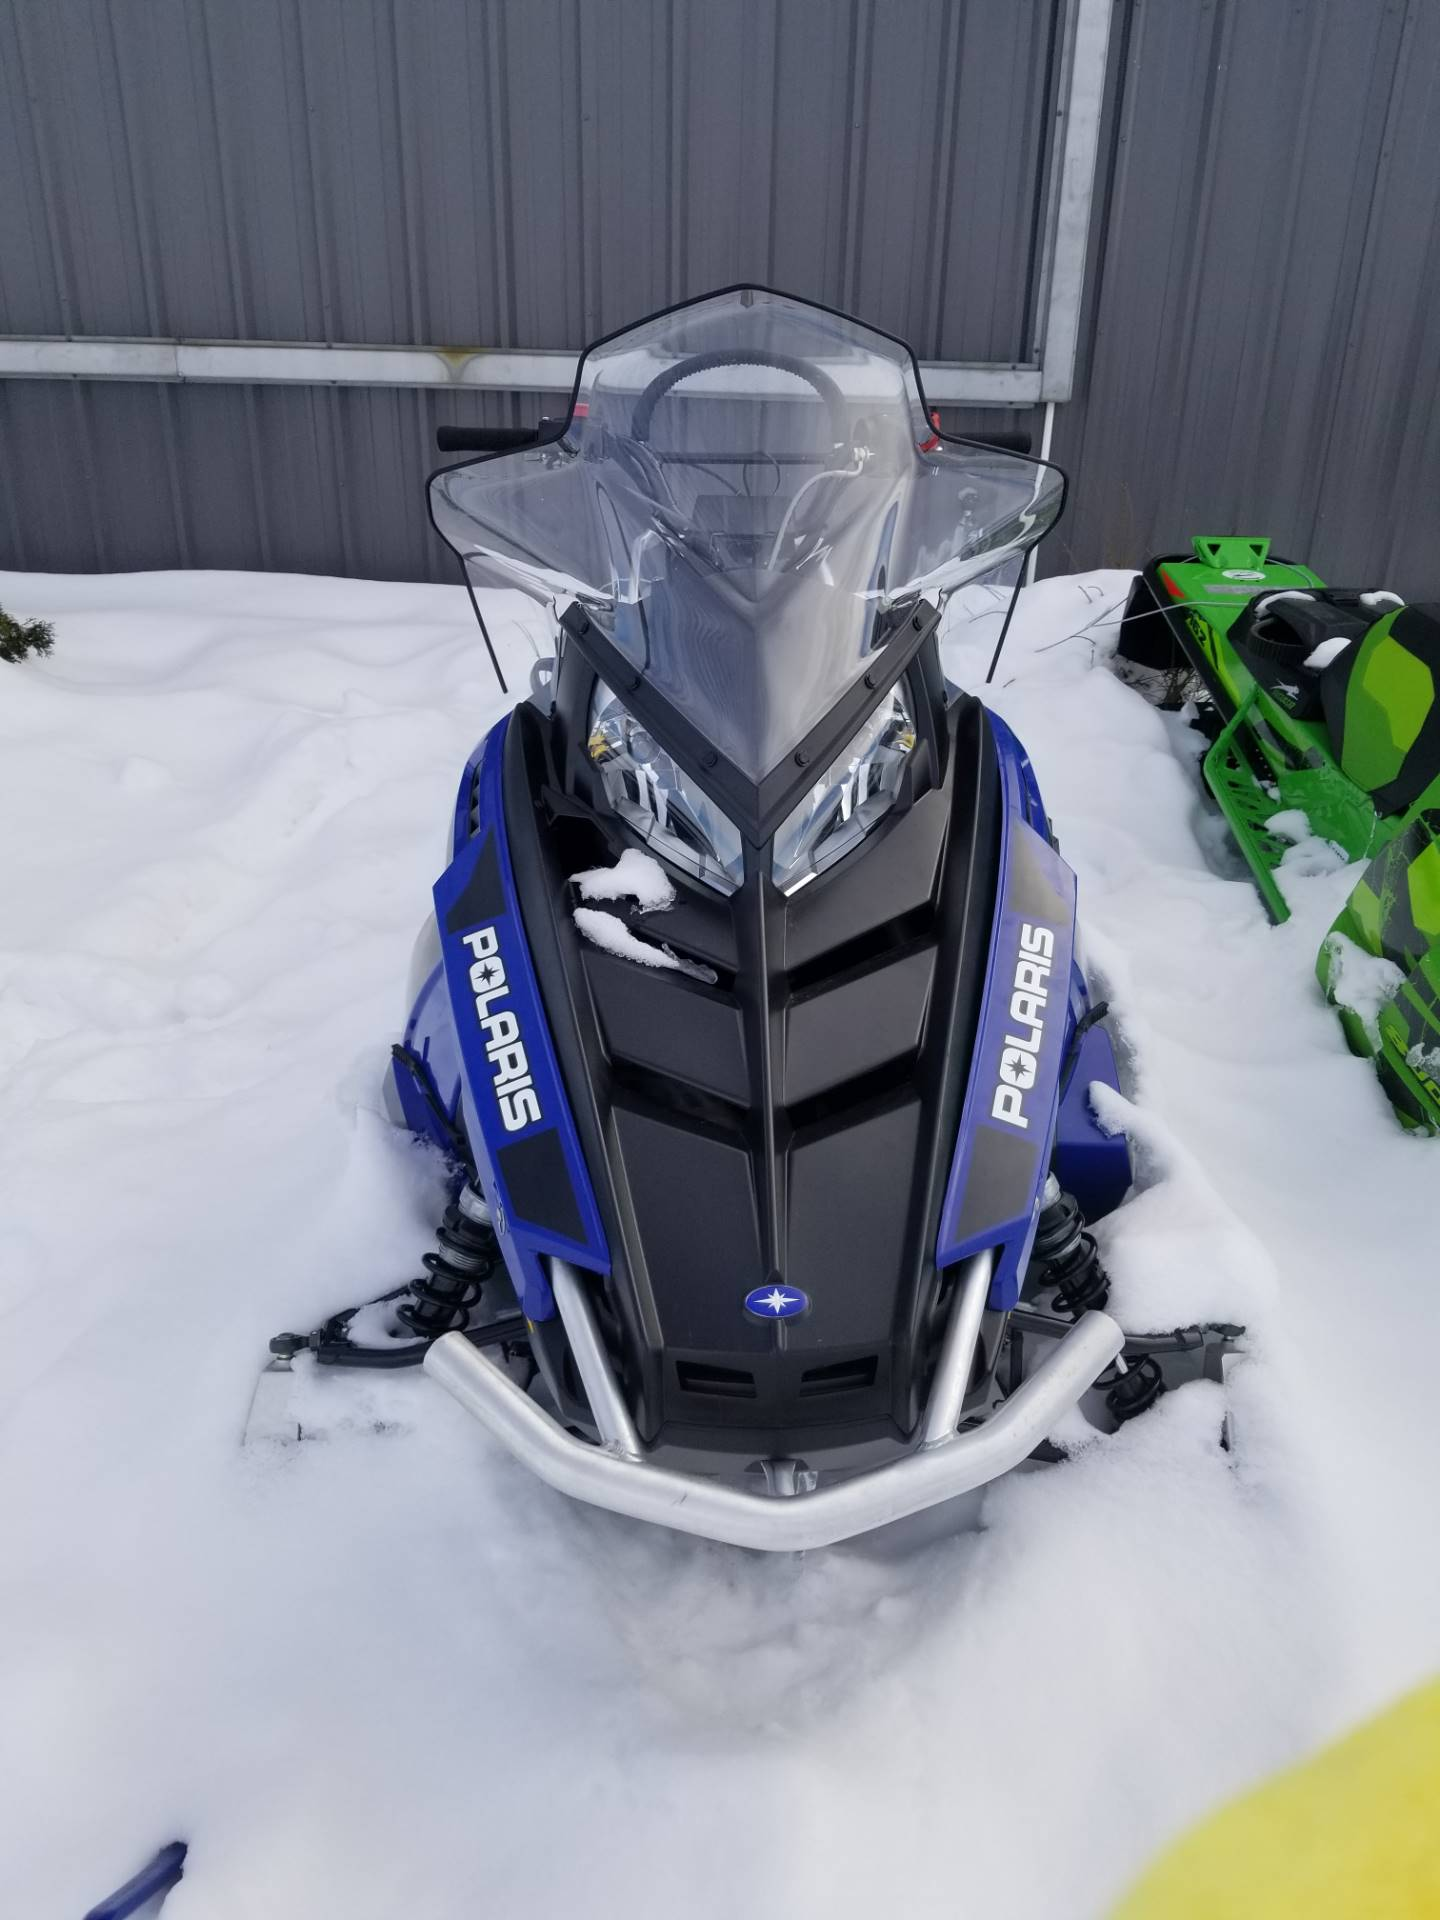 2019 Polaris 550 Voyageur 155 ES in Cottonwood, Idaho - Photo 1